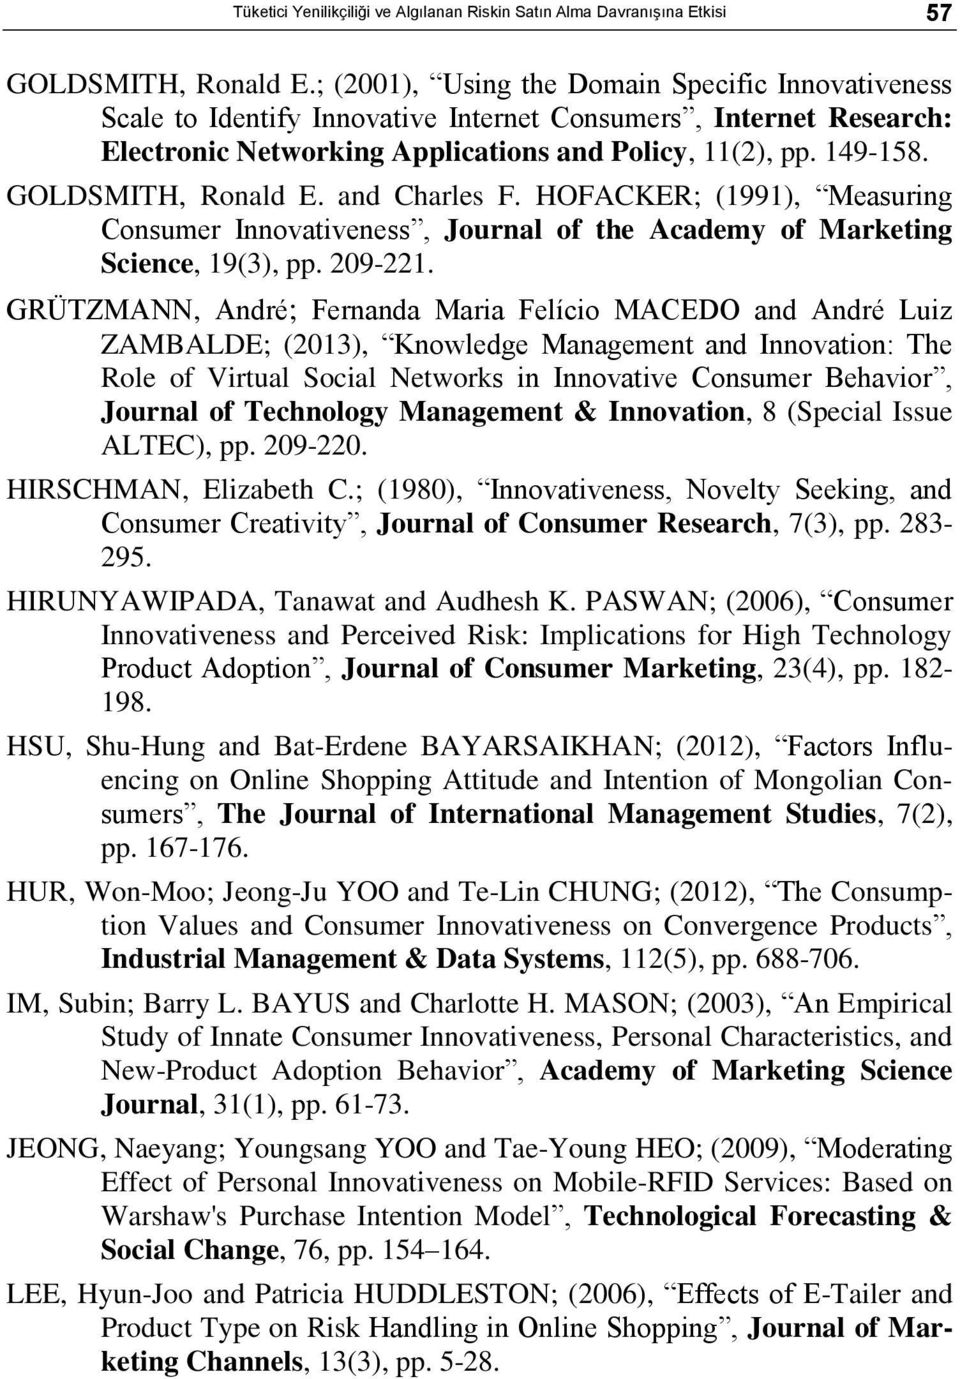 GOLDSMITH, Ronald E. and Charles F. HOFACKER; (1991), Measuring Consumer Innovativeness, Journal of the Academy of Marketing Science, 19(3), pp. 209-221.